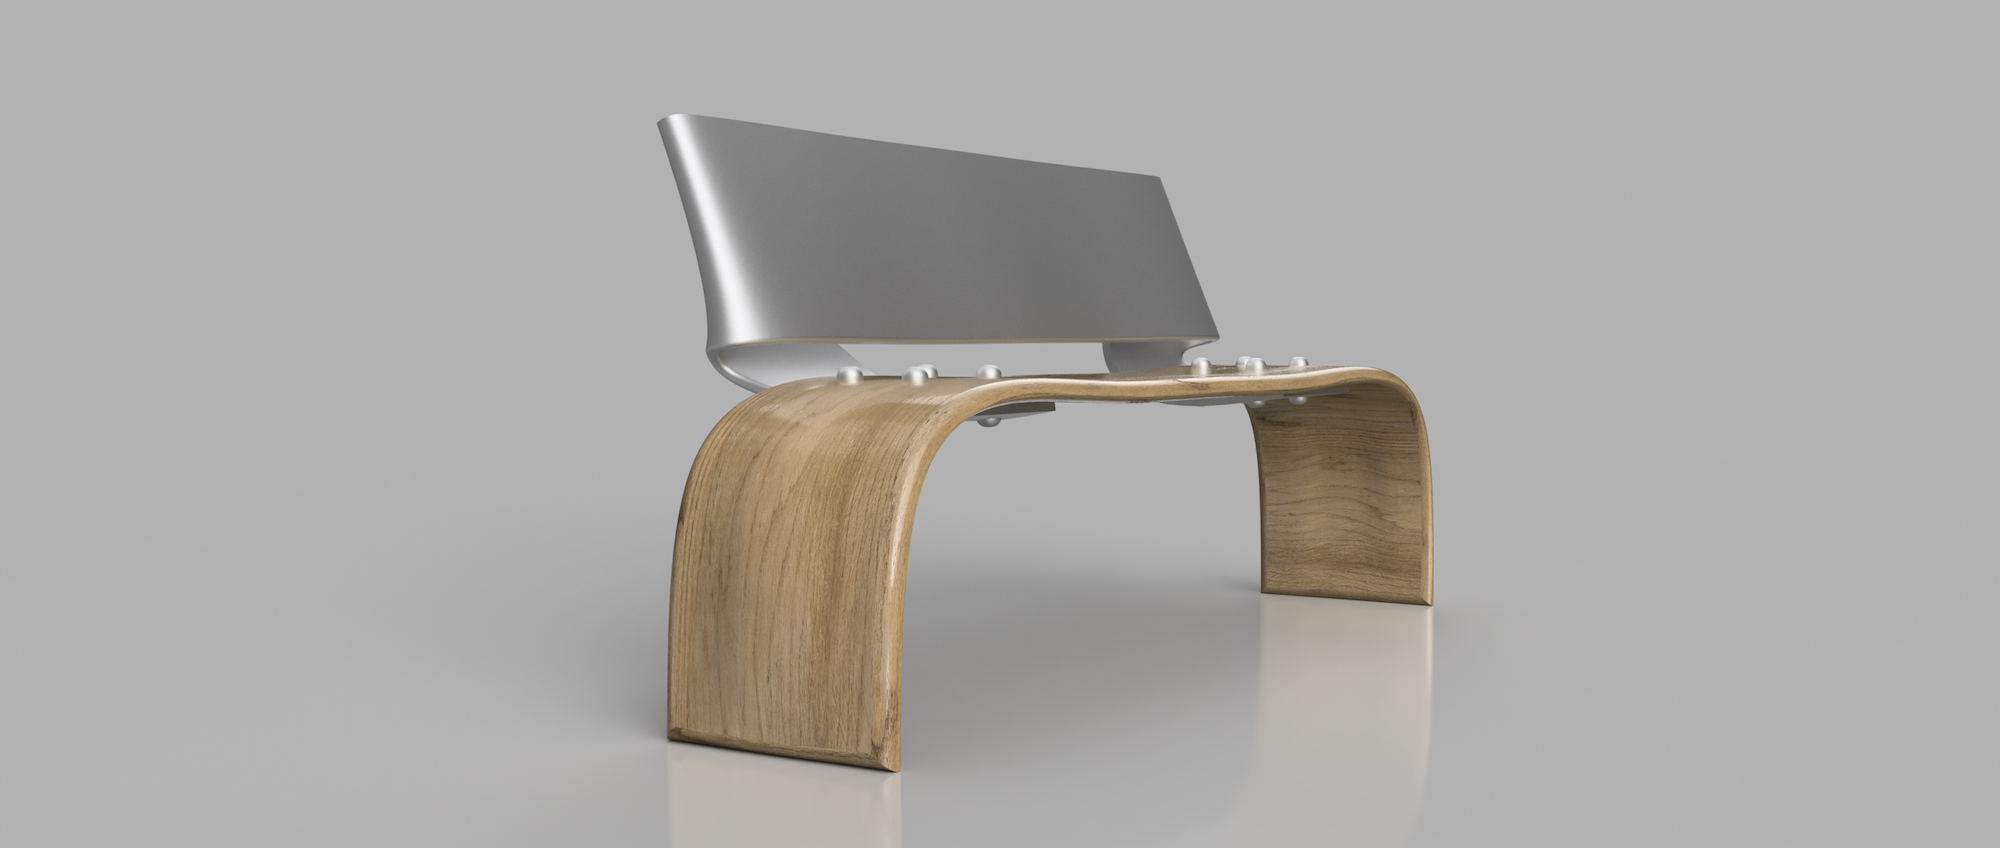 ALUMINUM AND WOOD PARK BENCH